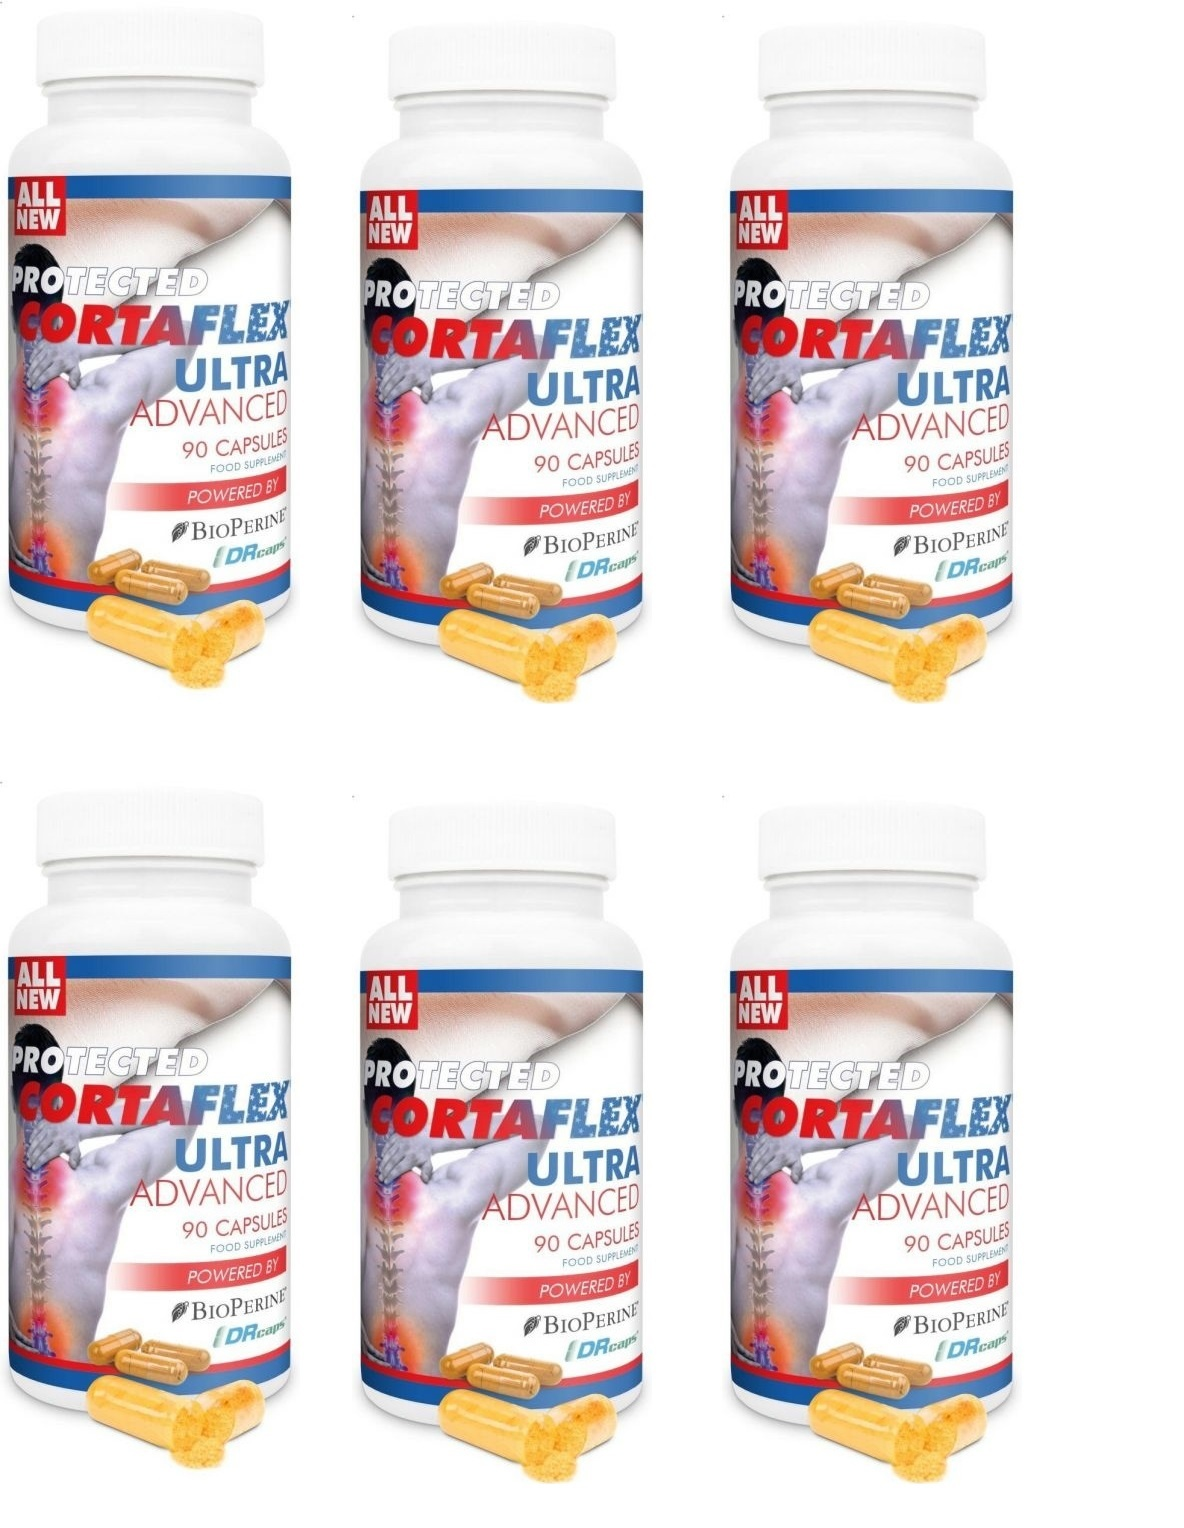 Dental Supps Protected Cortaflex Ultra Advanced, 90 Capsules, 6-pack